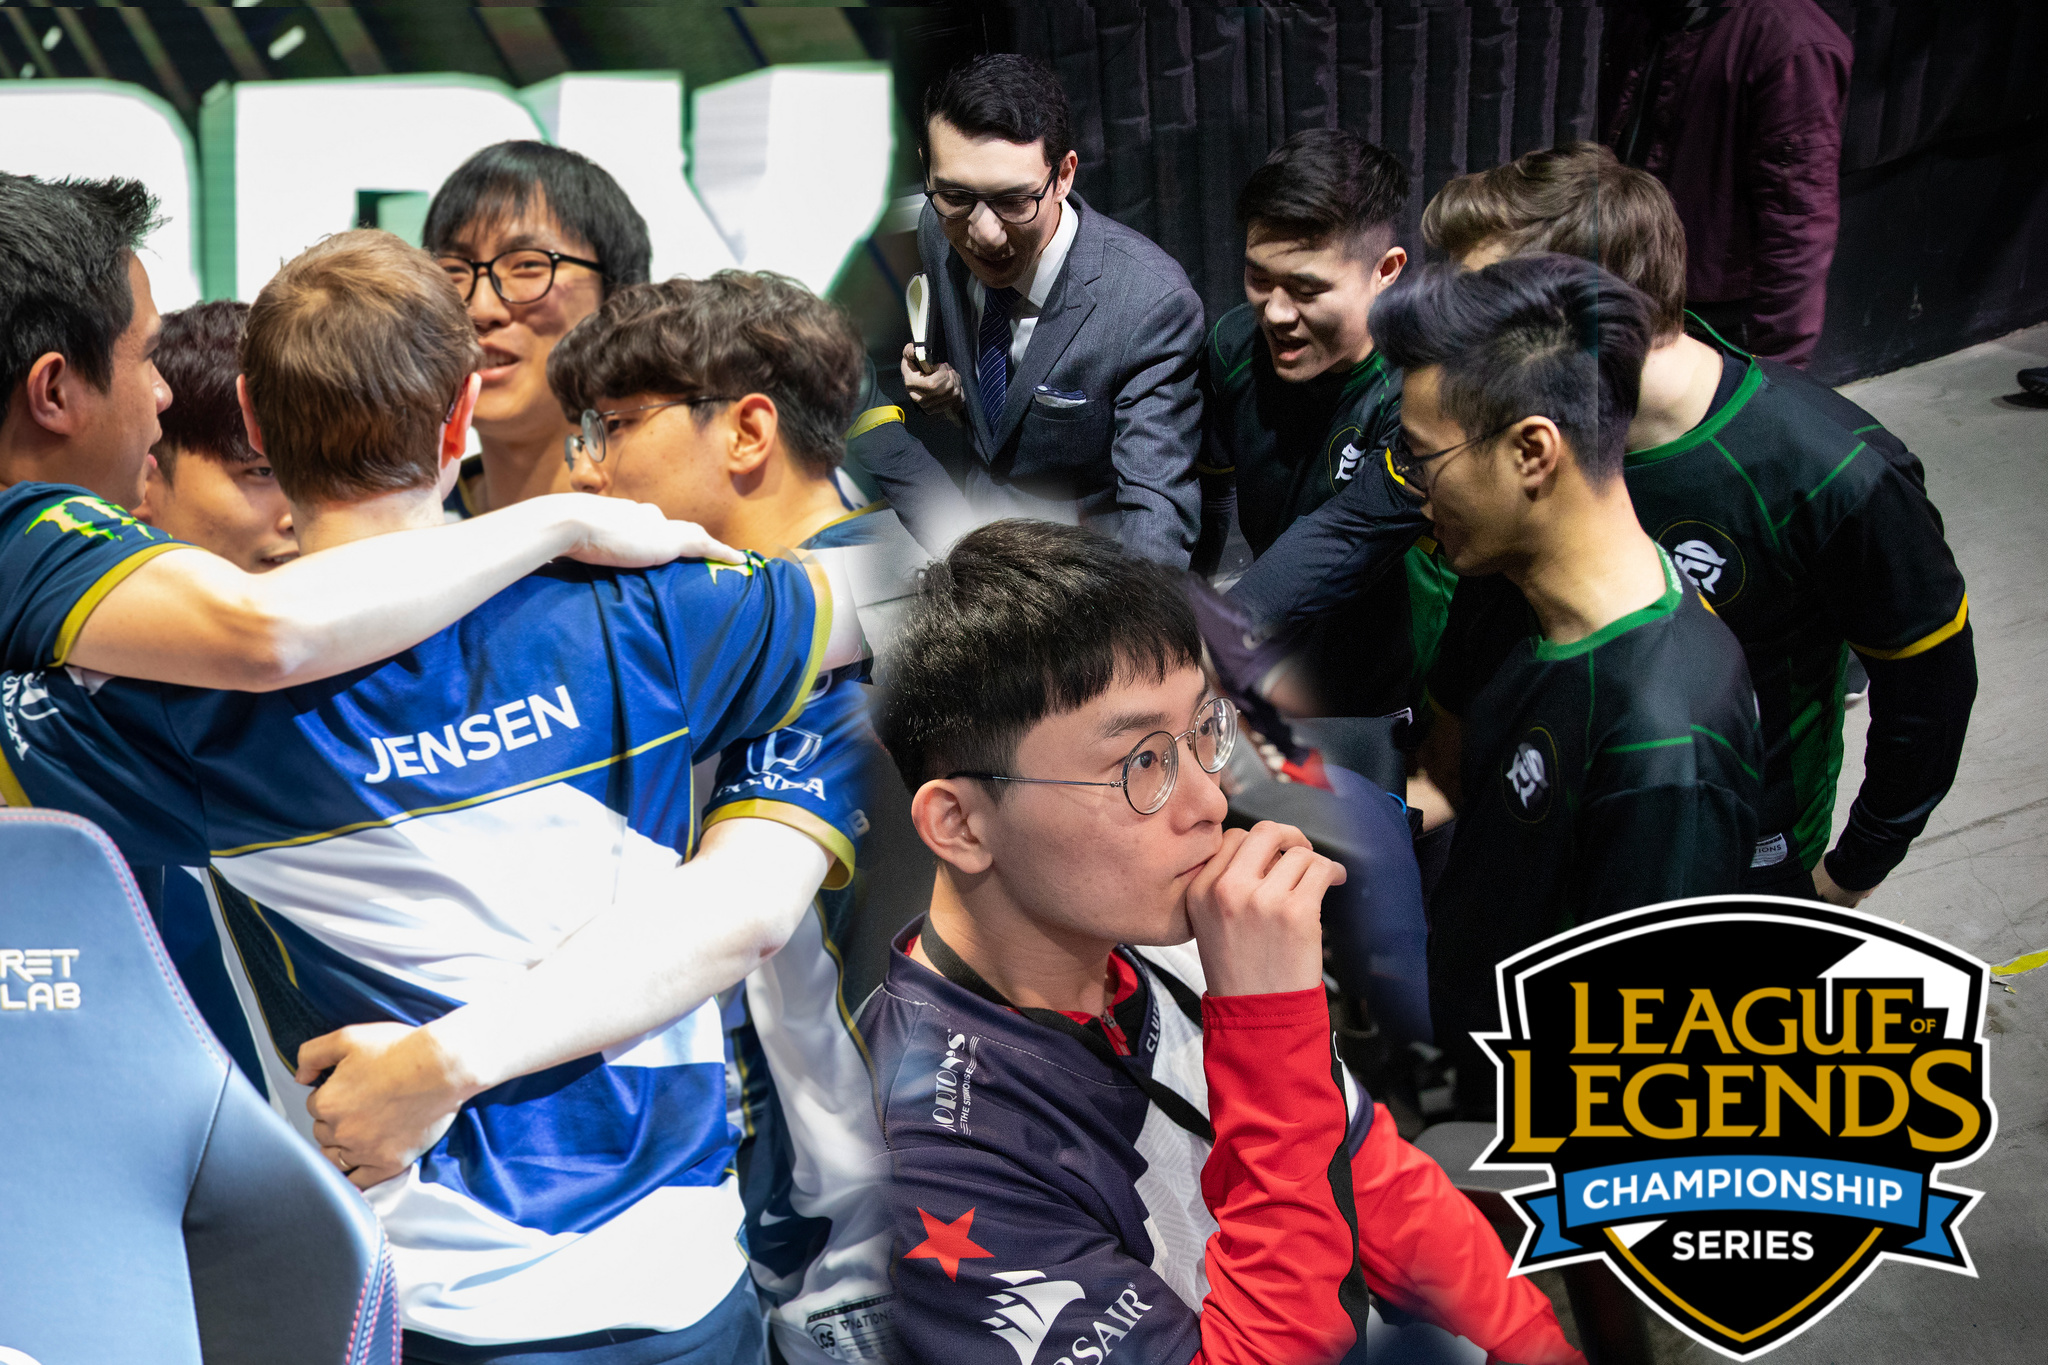 info for 6f636 af9b6 Team Liquid, Clutch Gaming, and FlyQuest enjoyed triumphant starts to the  LCS, sharing 1st place with 2-0 opening weeks. Team Liquid looked dominant  in ...